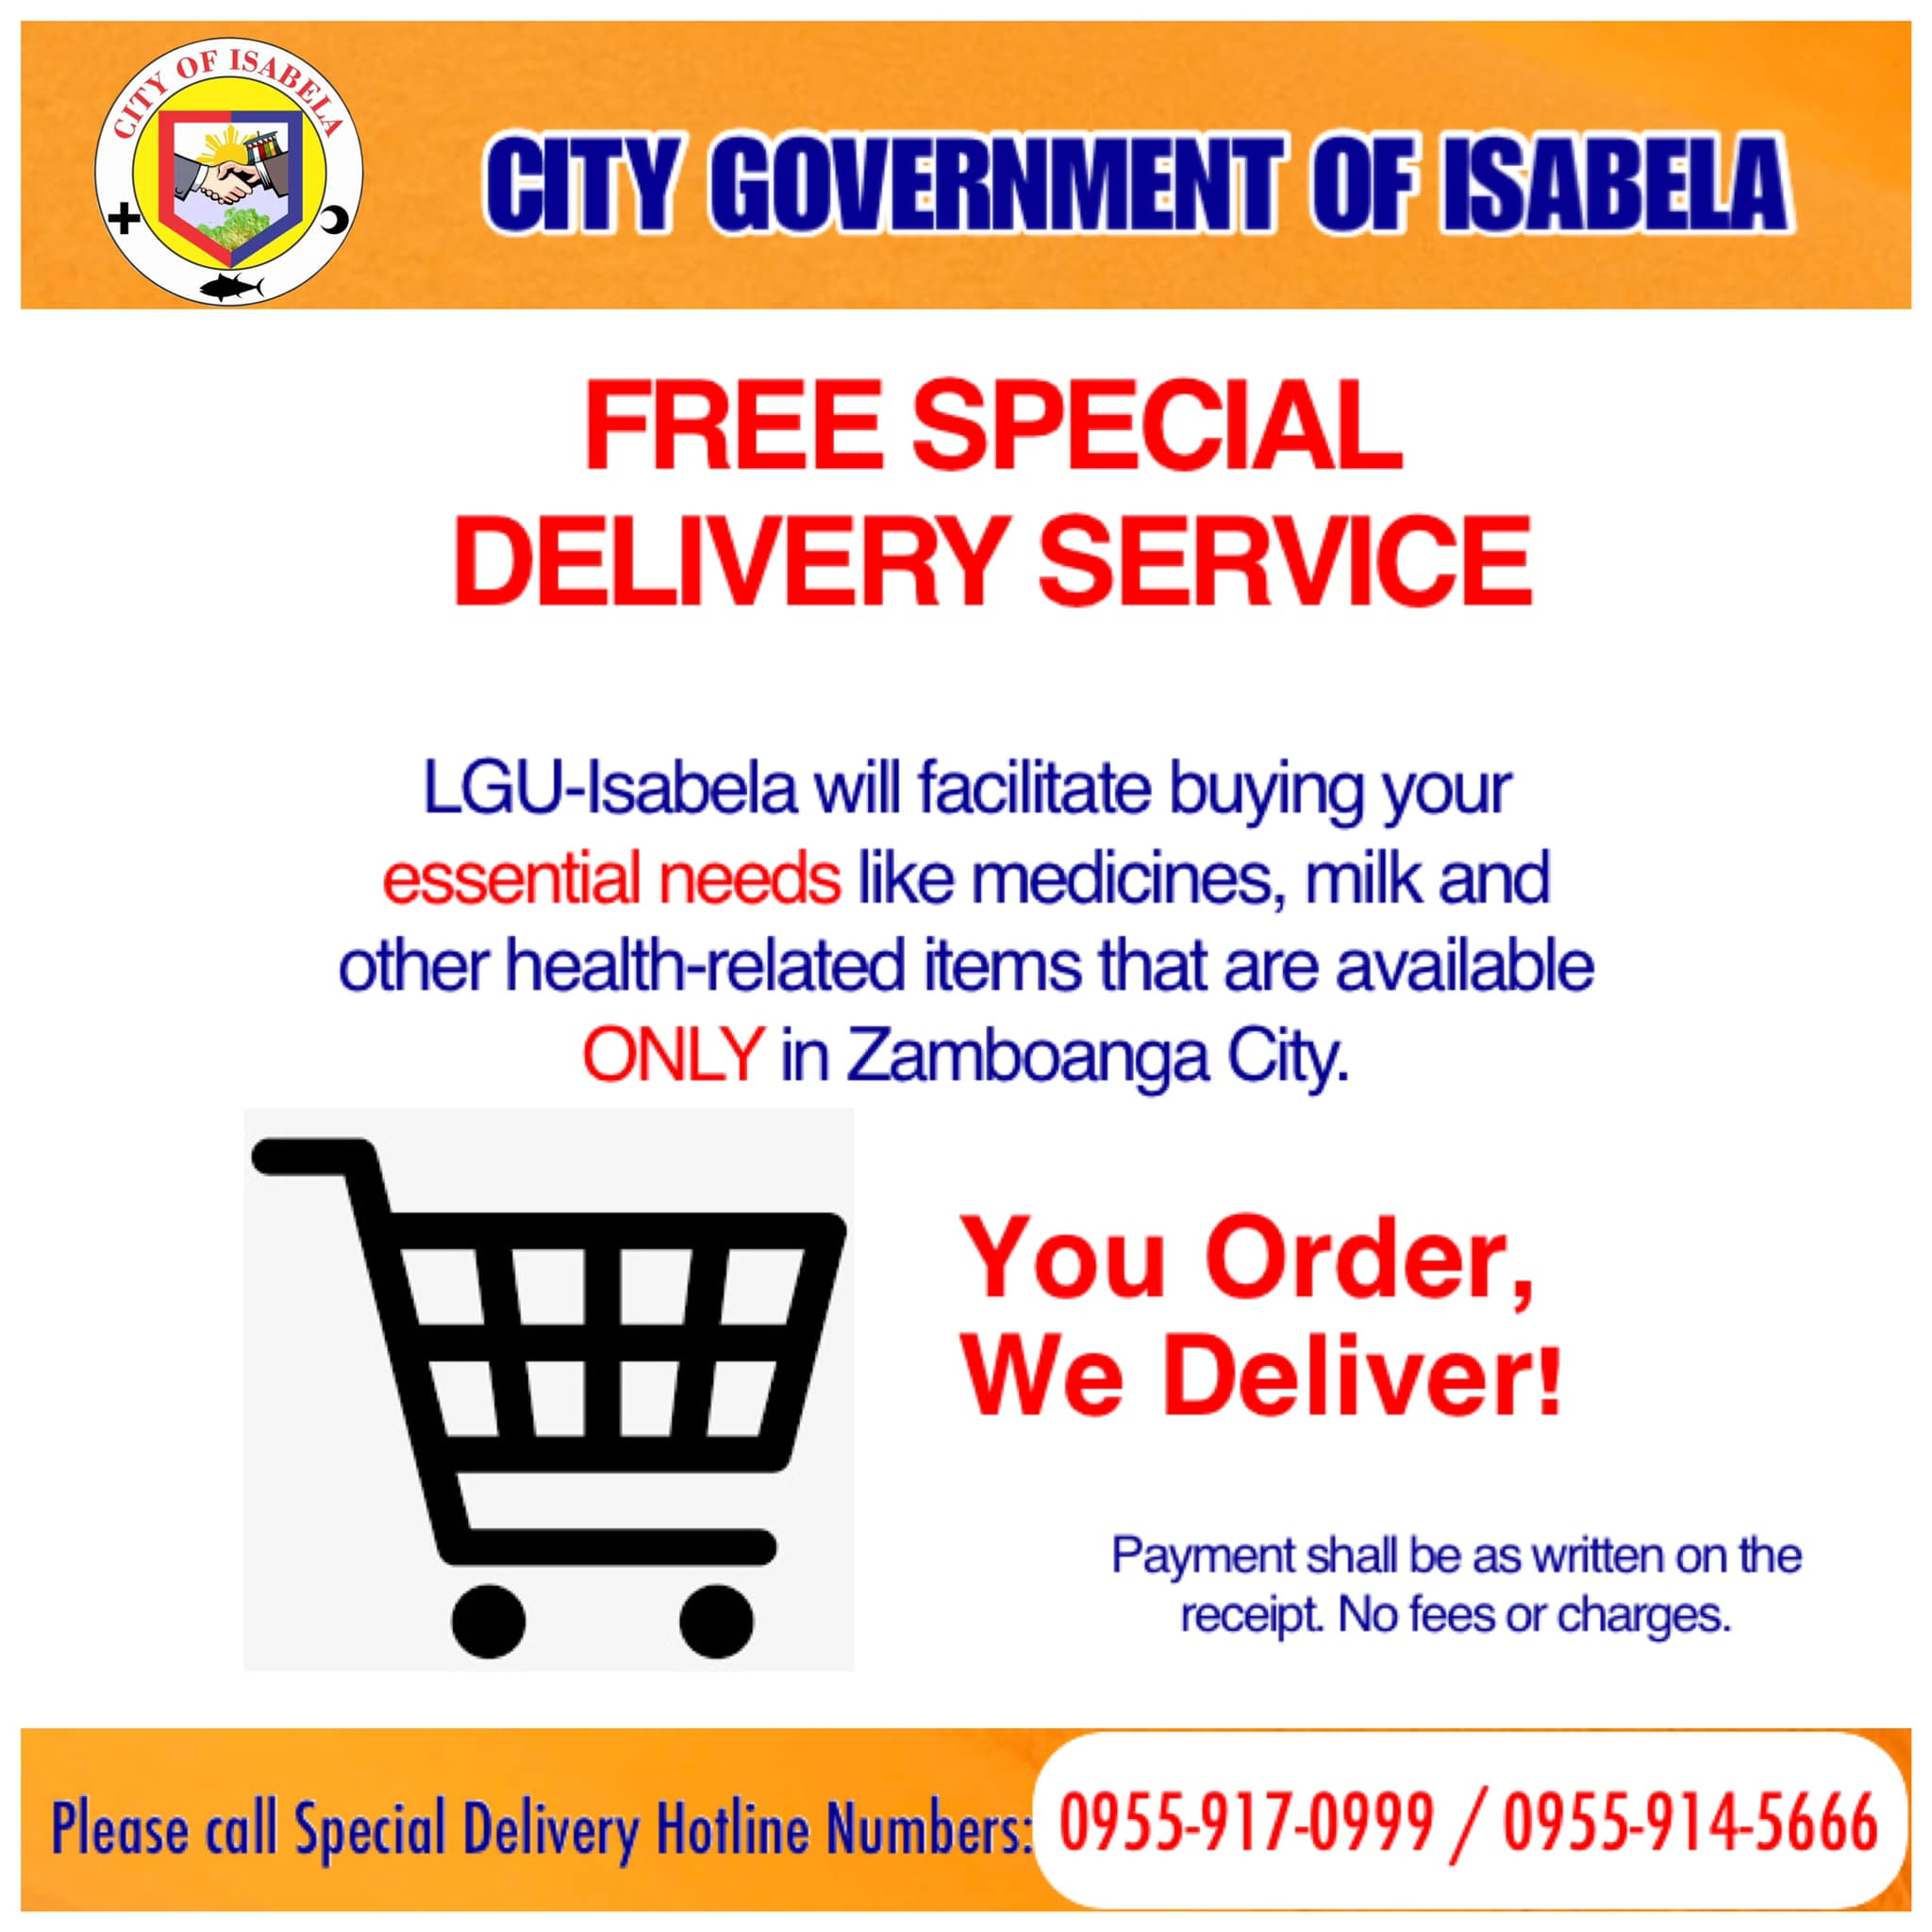 Free Special Delivery Service